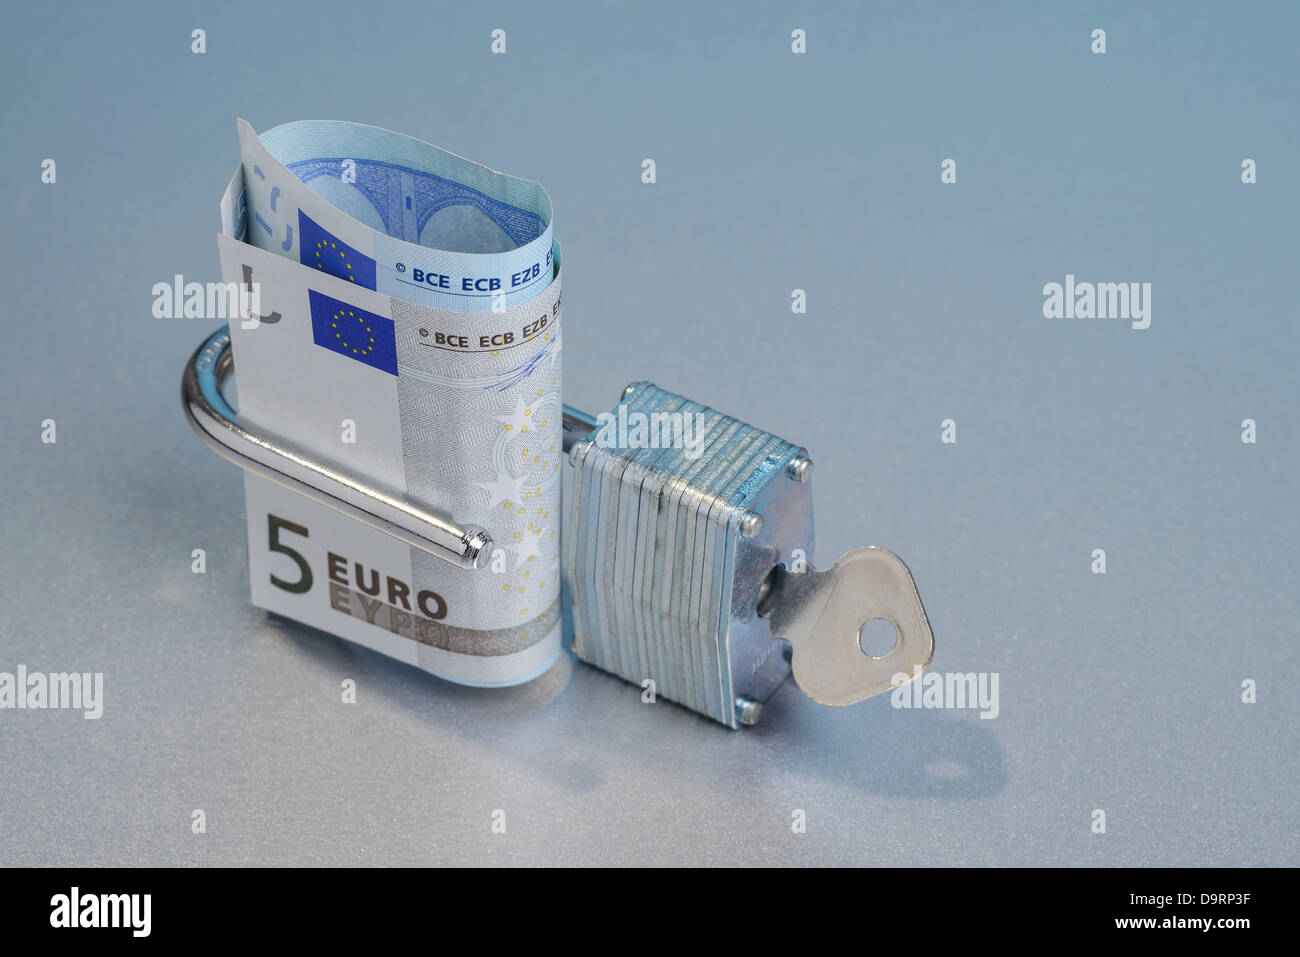 5 Euro note in an open padlock - Stock Image